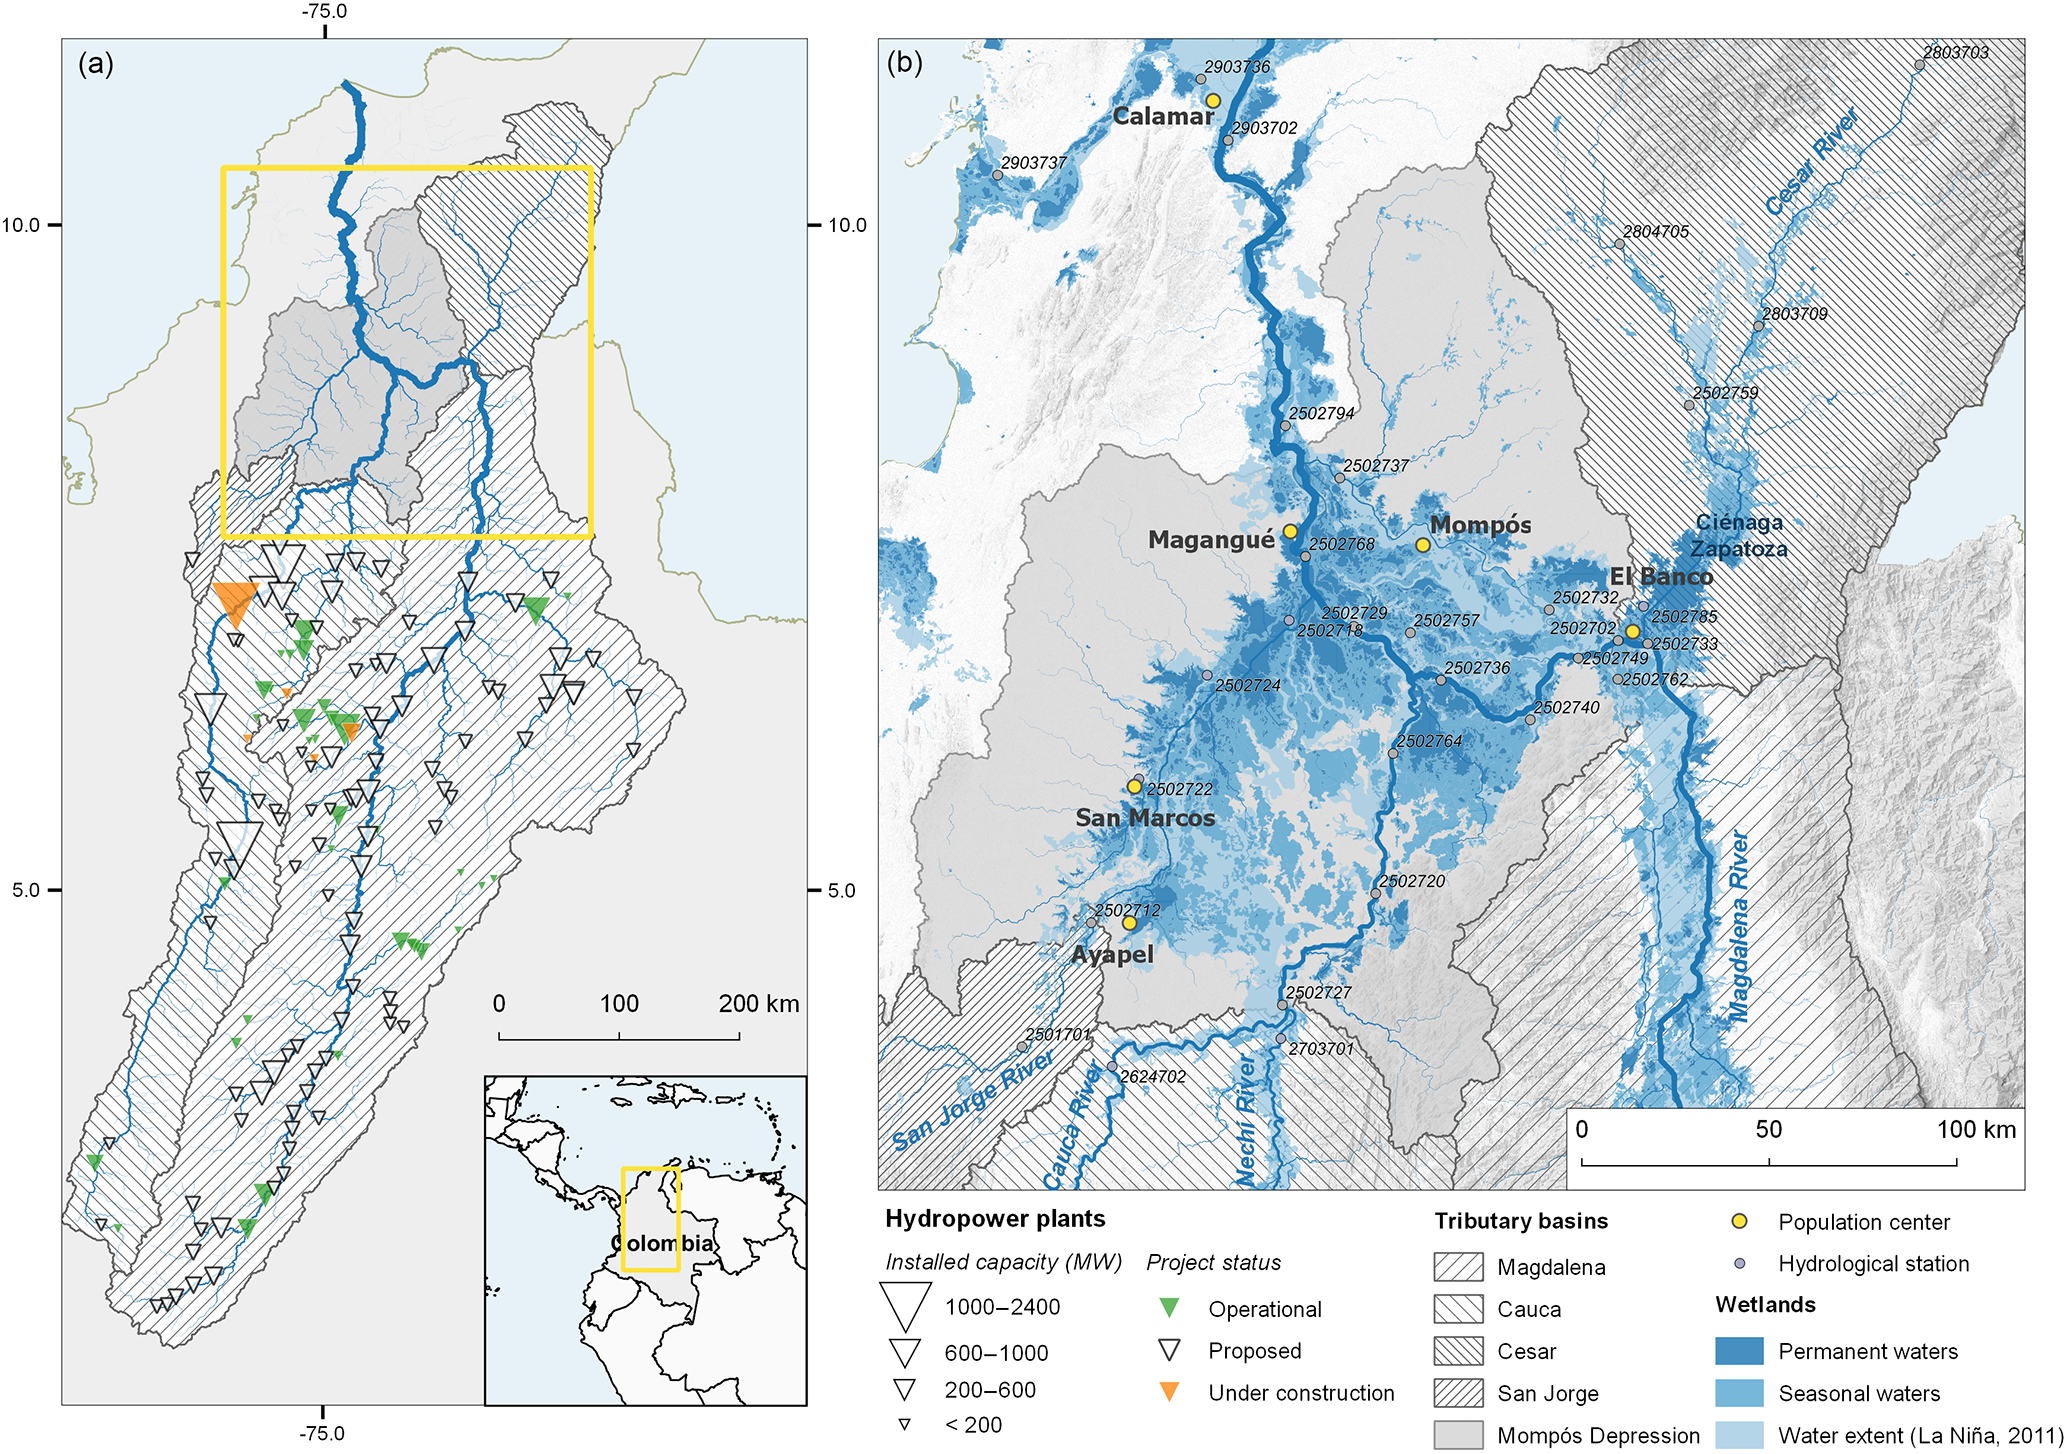 HESS - Basin-scale impacts of hydropower development on the Mompós